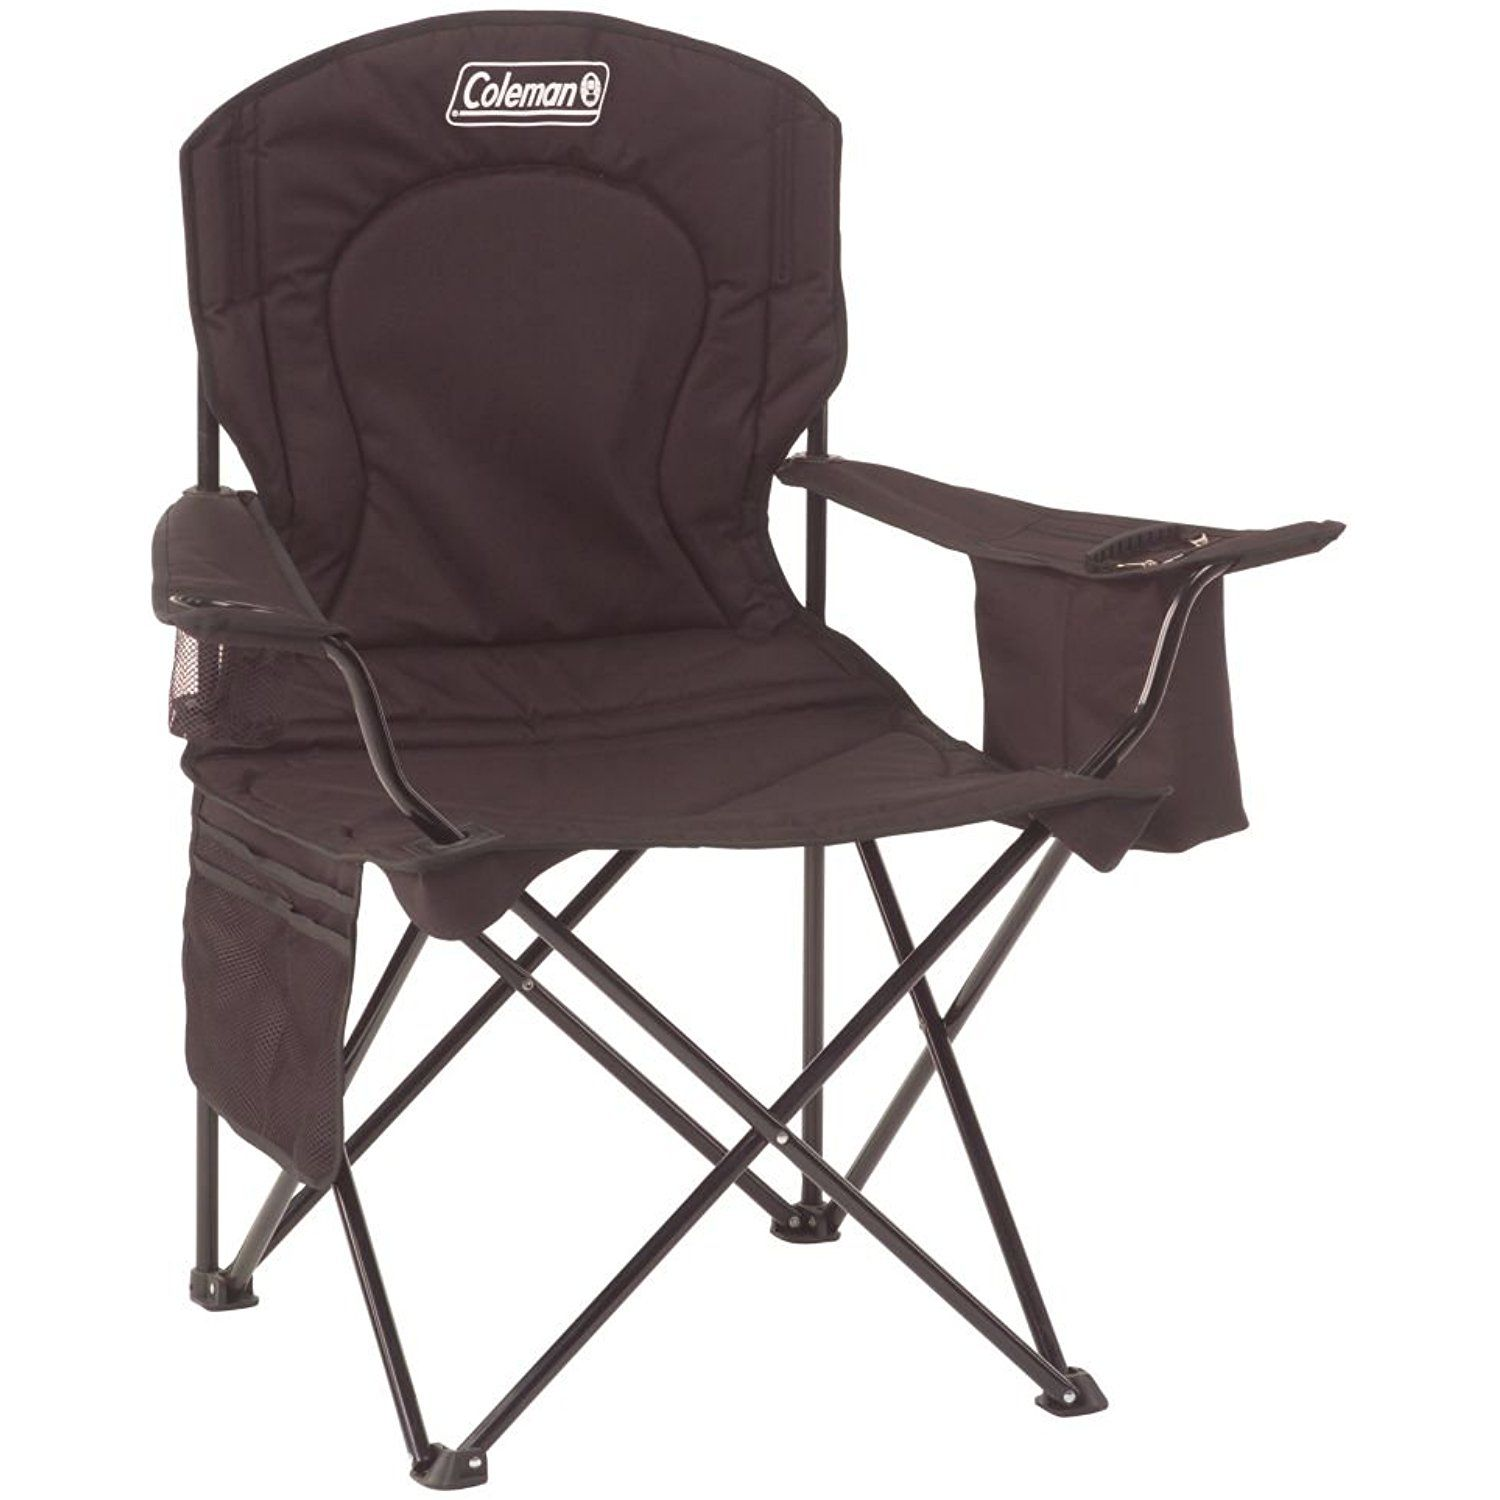 Coleman Oversized Quad Chair with Cooler Details can be found by